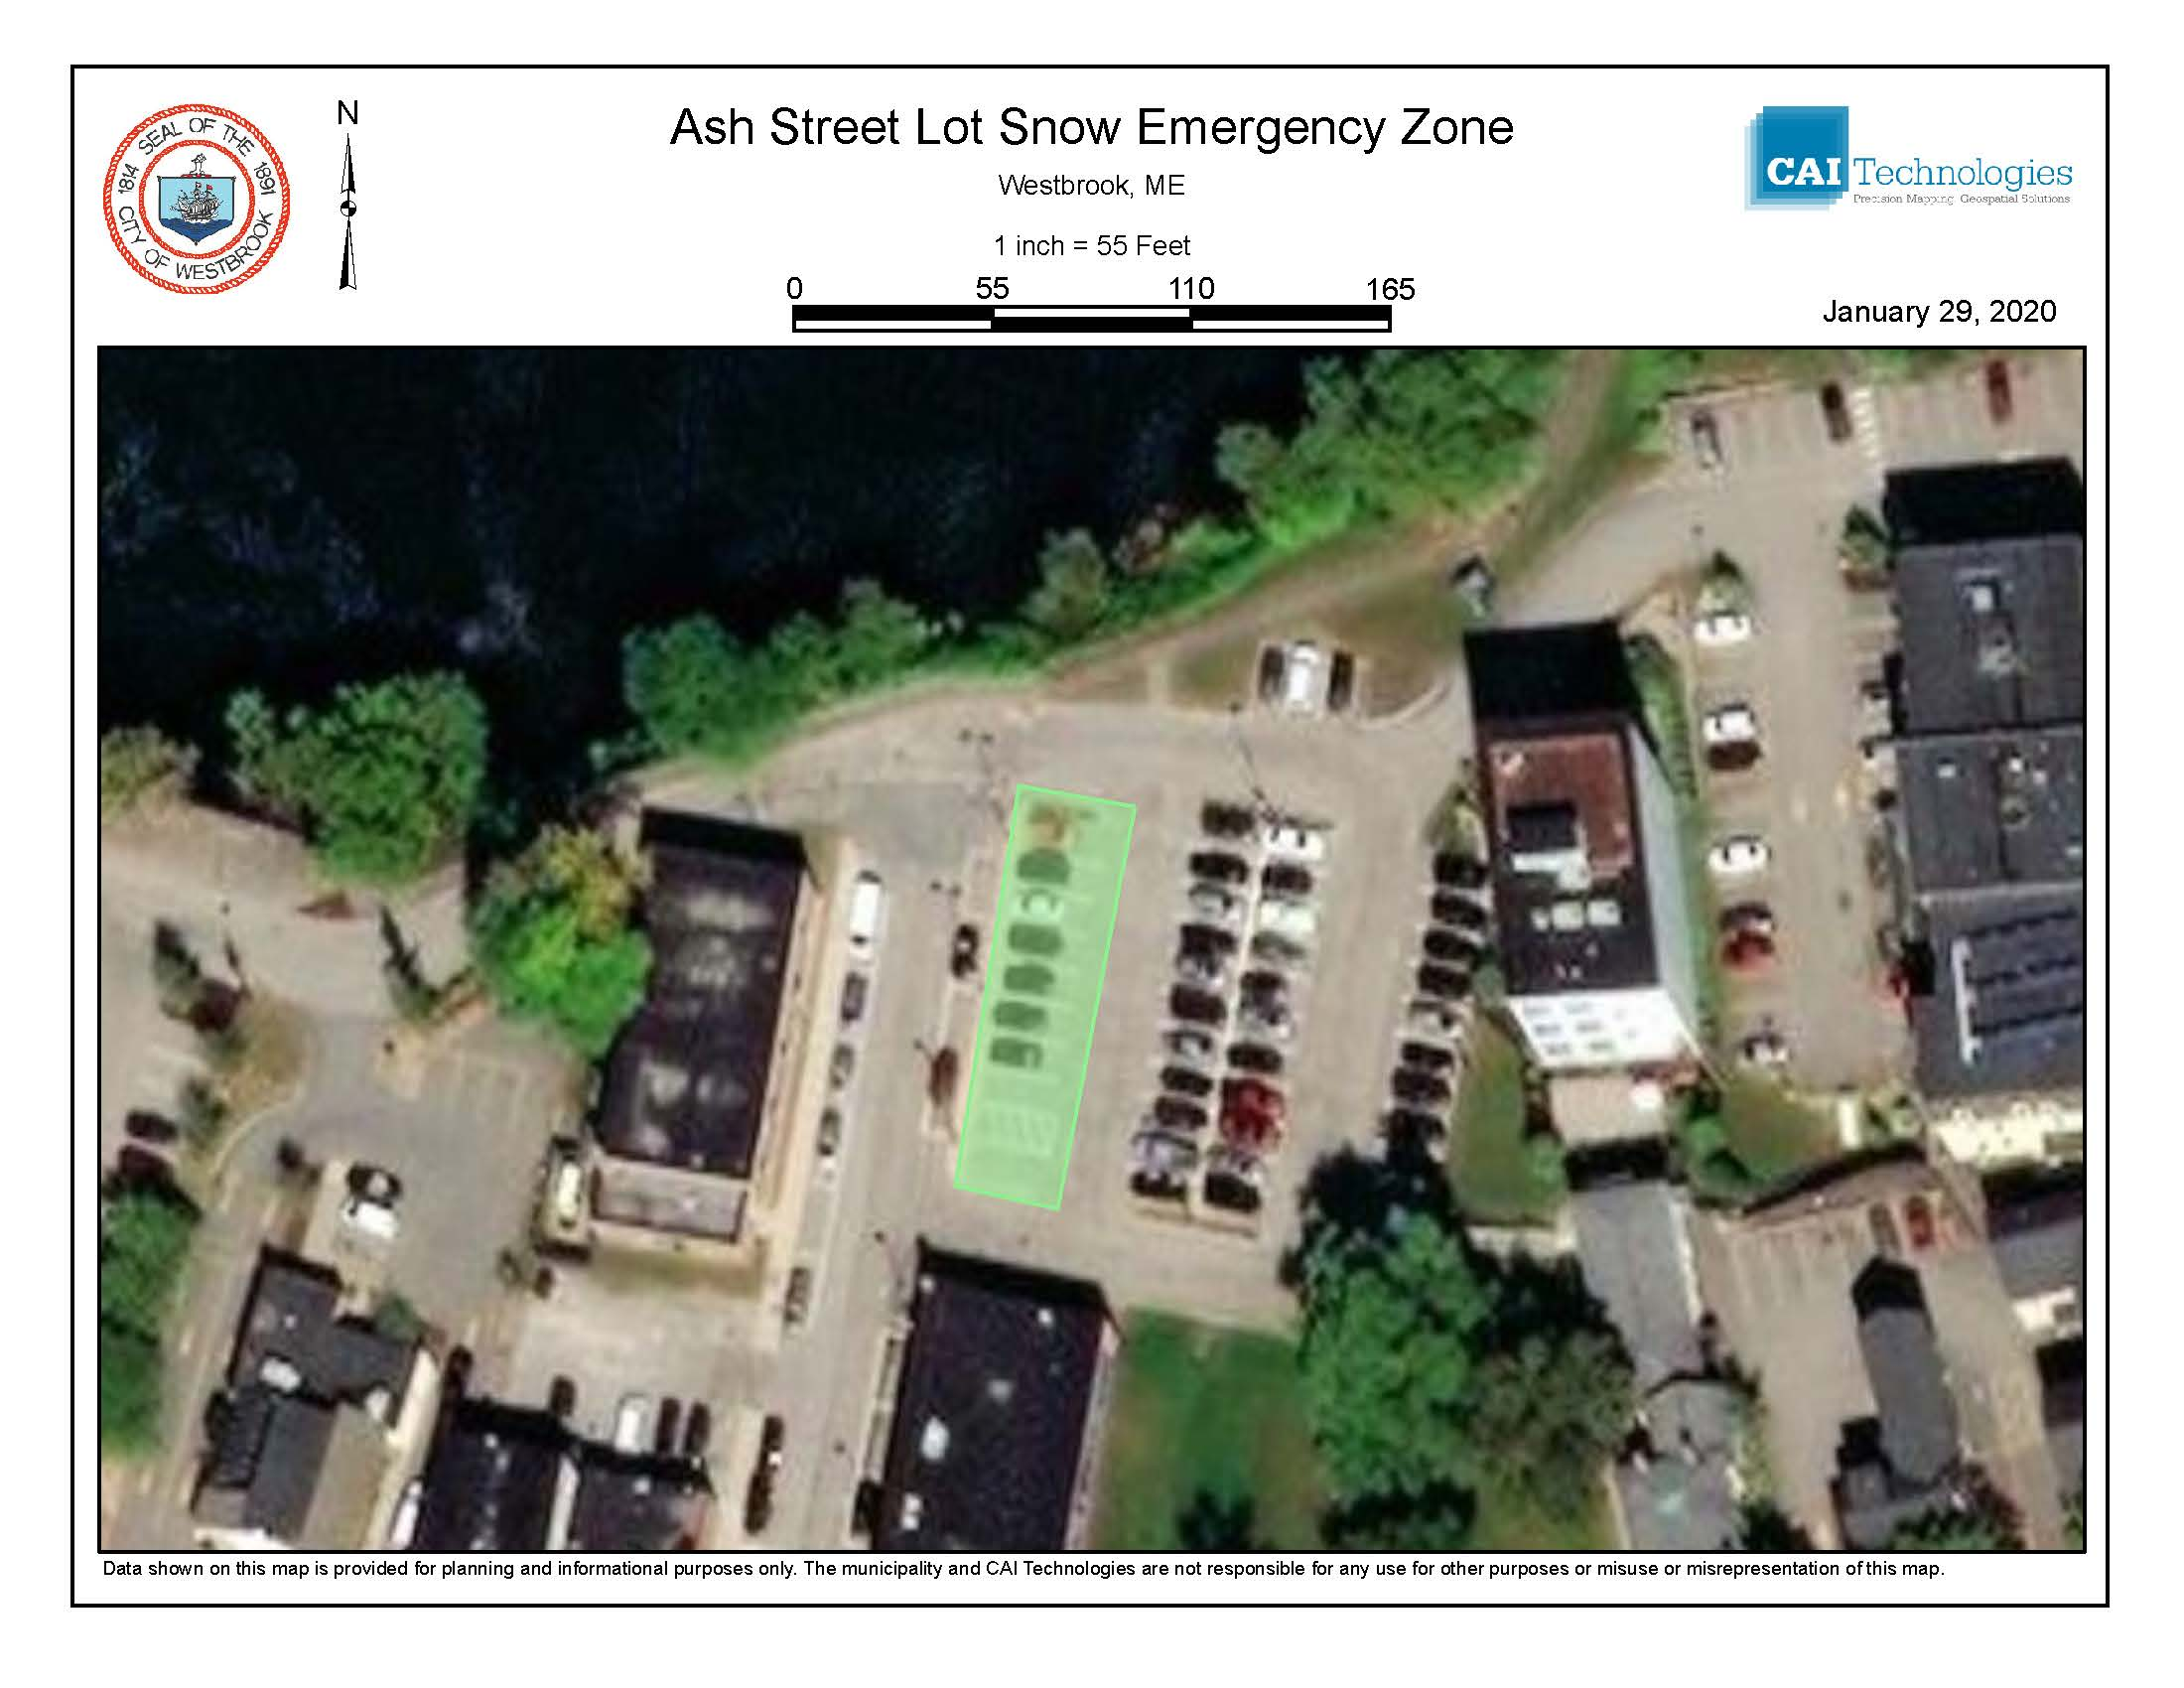 Ash Street lot Snow Emergency Zone